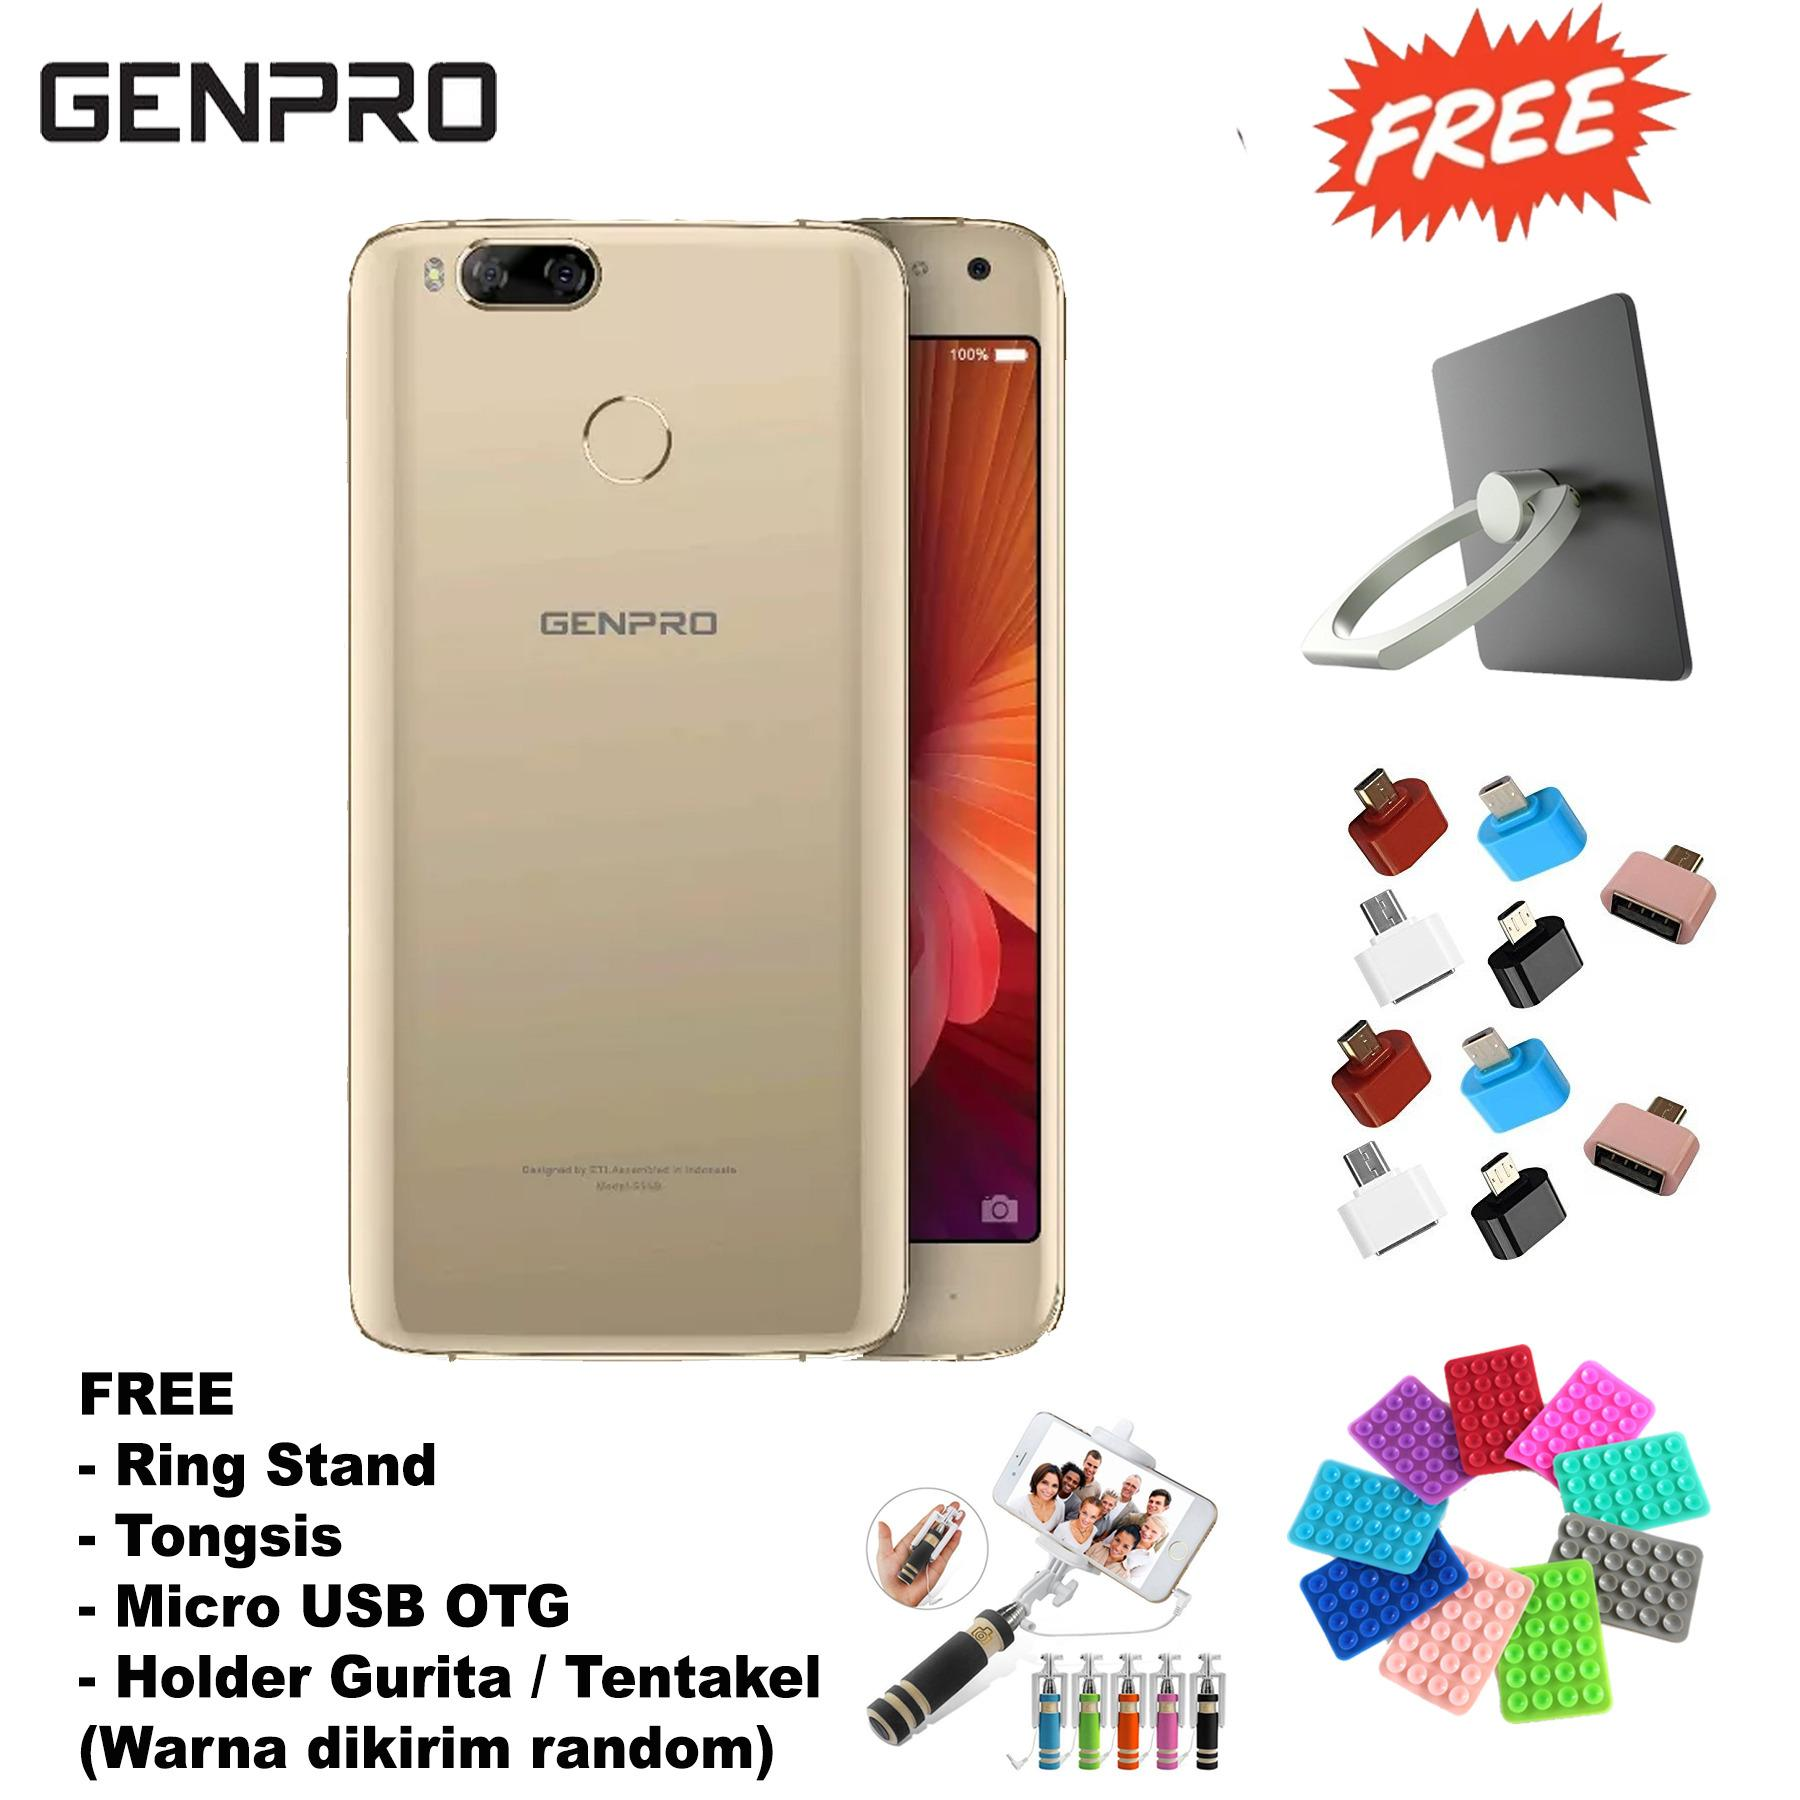 Genpro Bokeh - 2/16GB - Dual Camera - 5.5 in - Perfect Bokeh Camera - (Free 4 Item Acc )